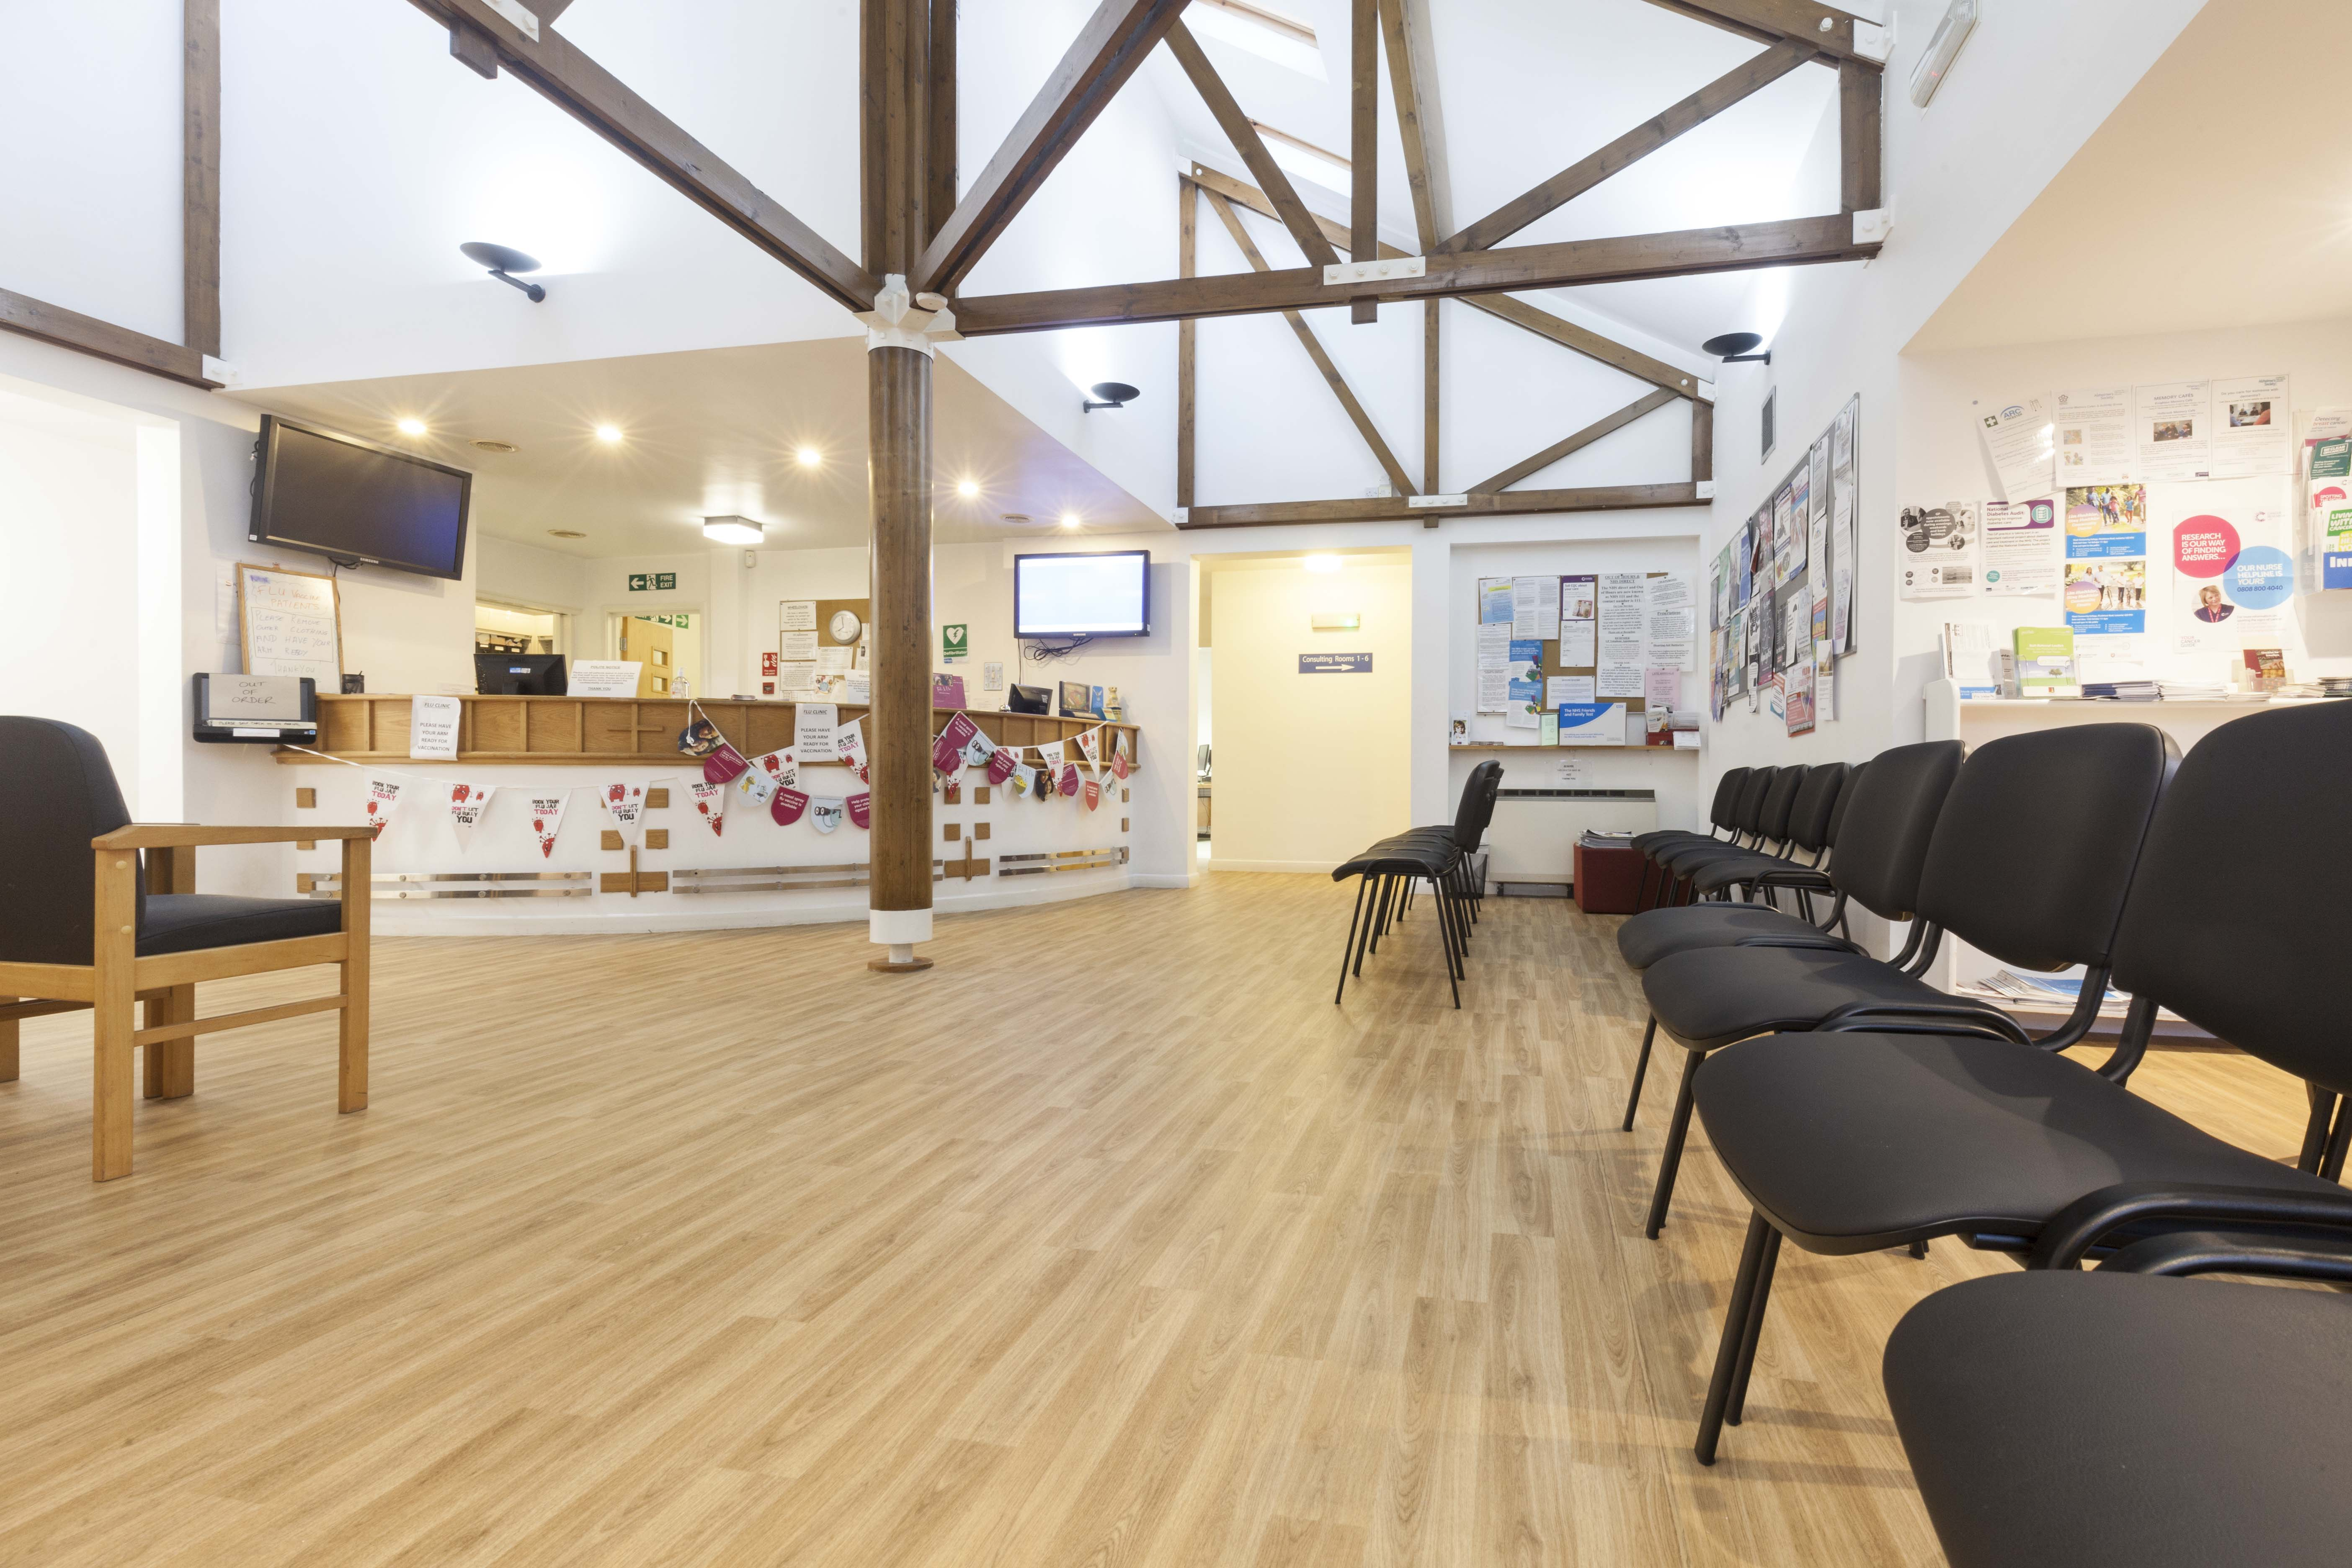 Polyflor Safety Flooring Helps Improve Acoustics In Gp Surgery